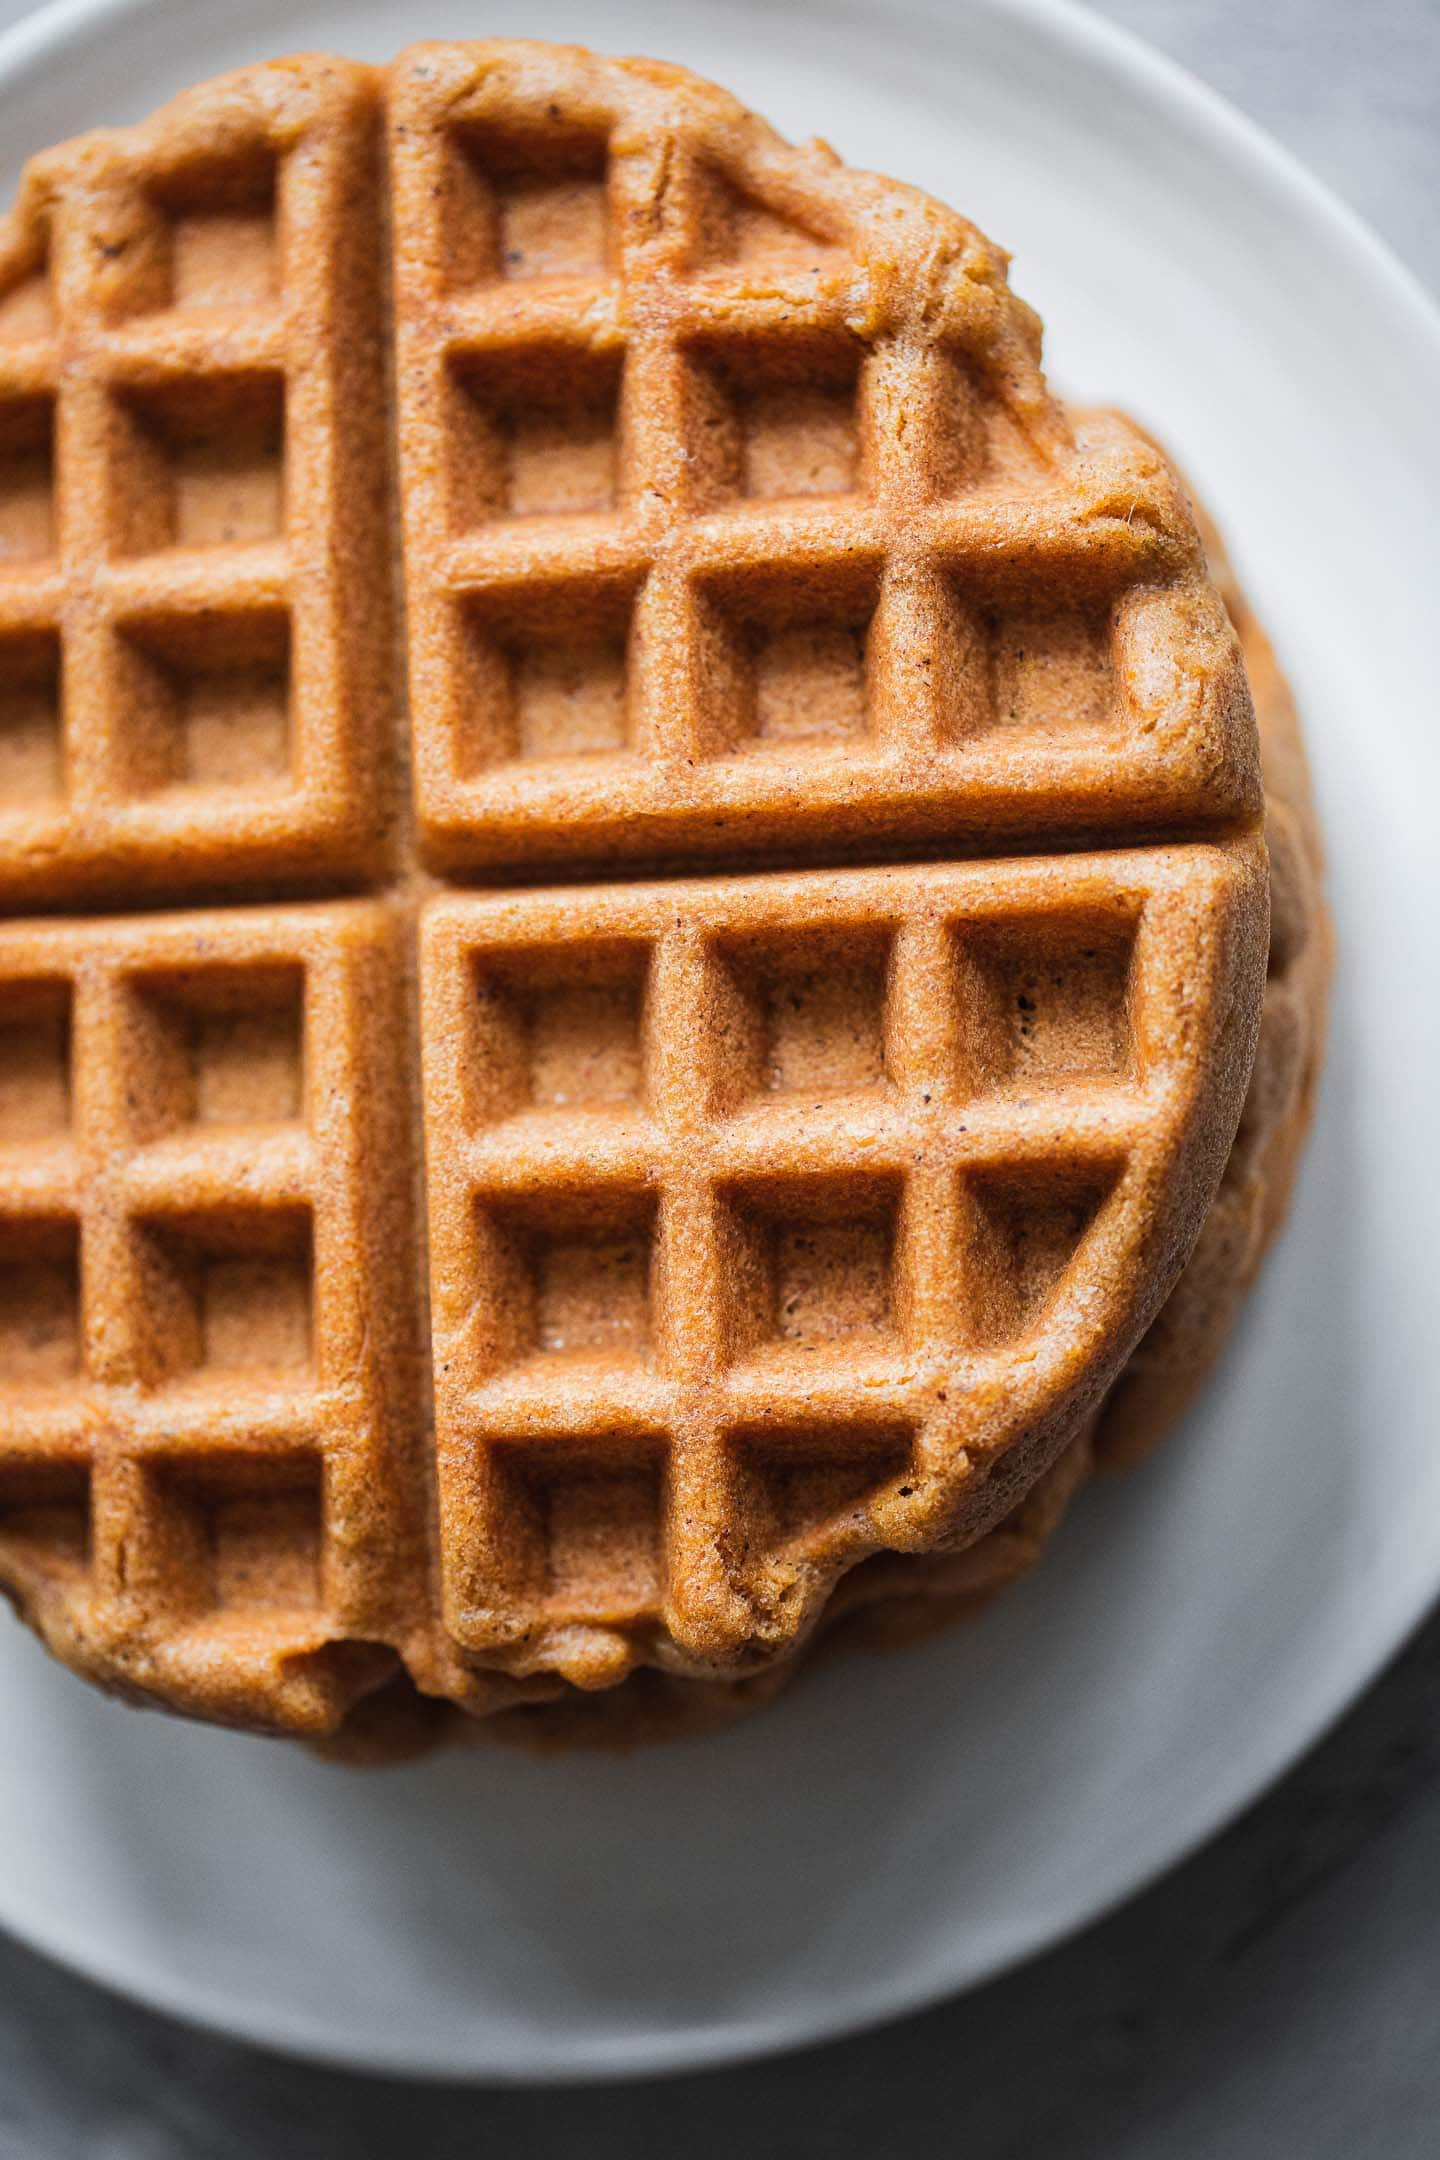 Stack of gluten-free waffles on a plate